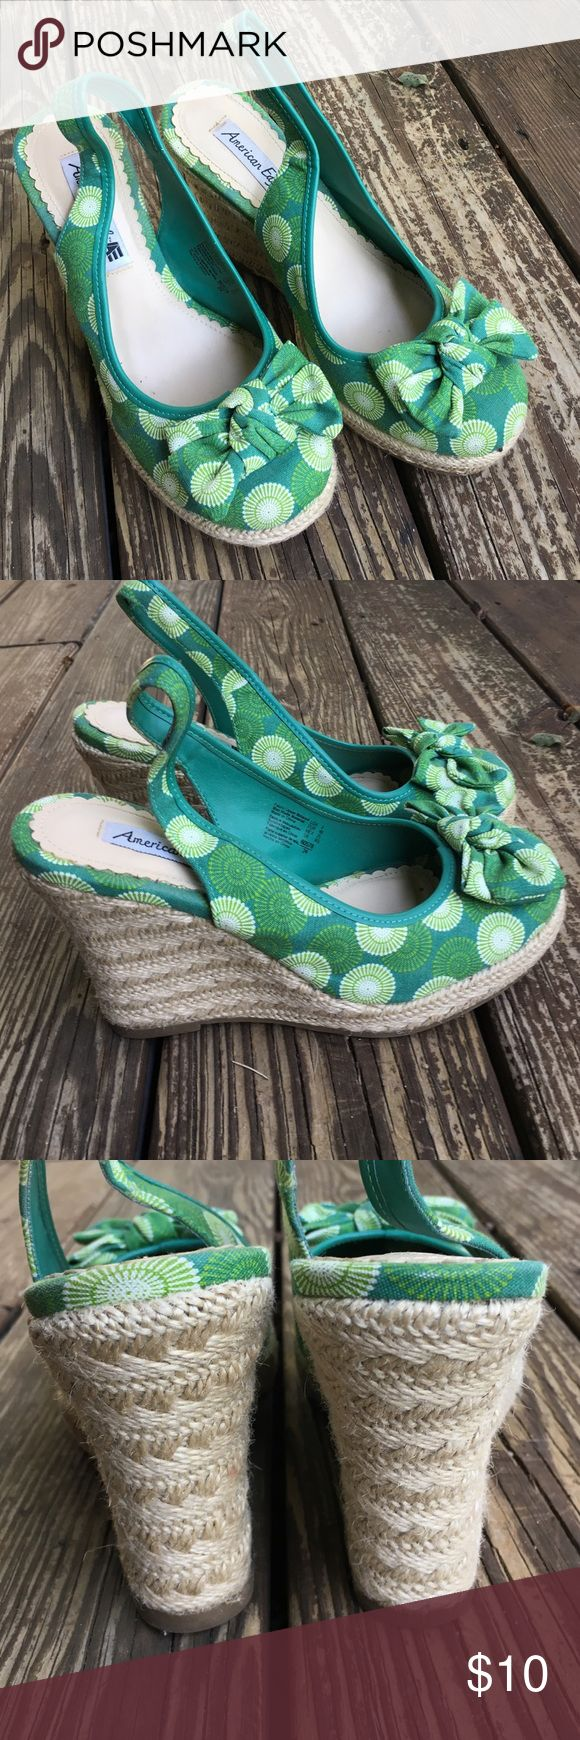 """American Eagle Green Wedges Super cute green wedges.  Very little wear.  4"""" heal.  Size 8.  SE11 American Eagle by Payless Shoes Wedges"""